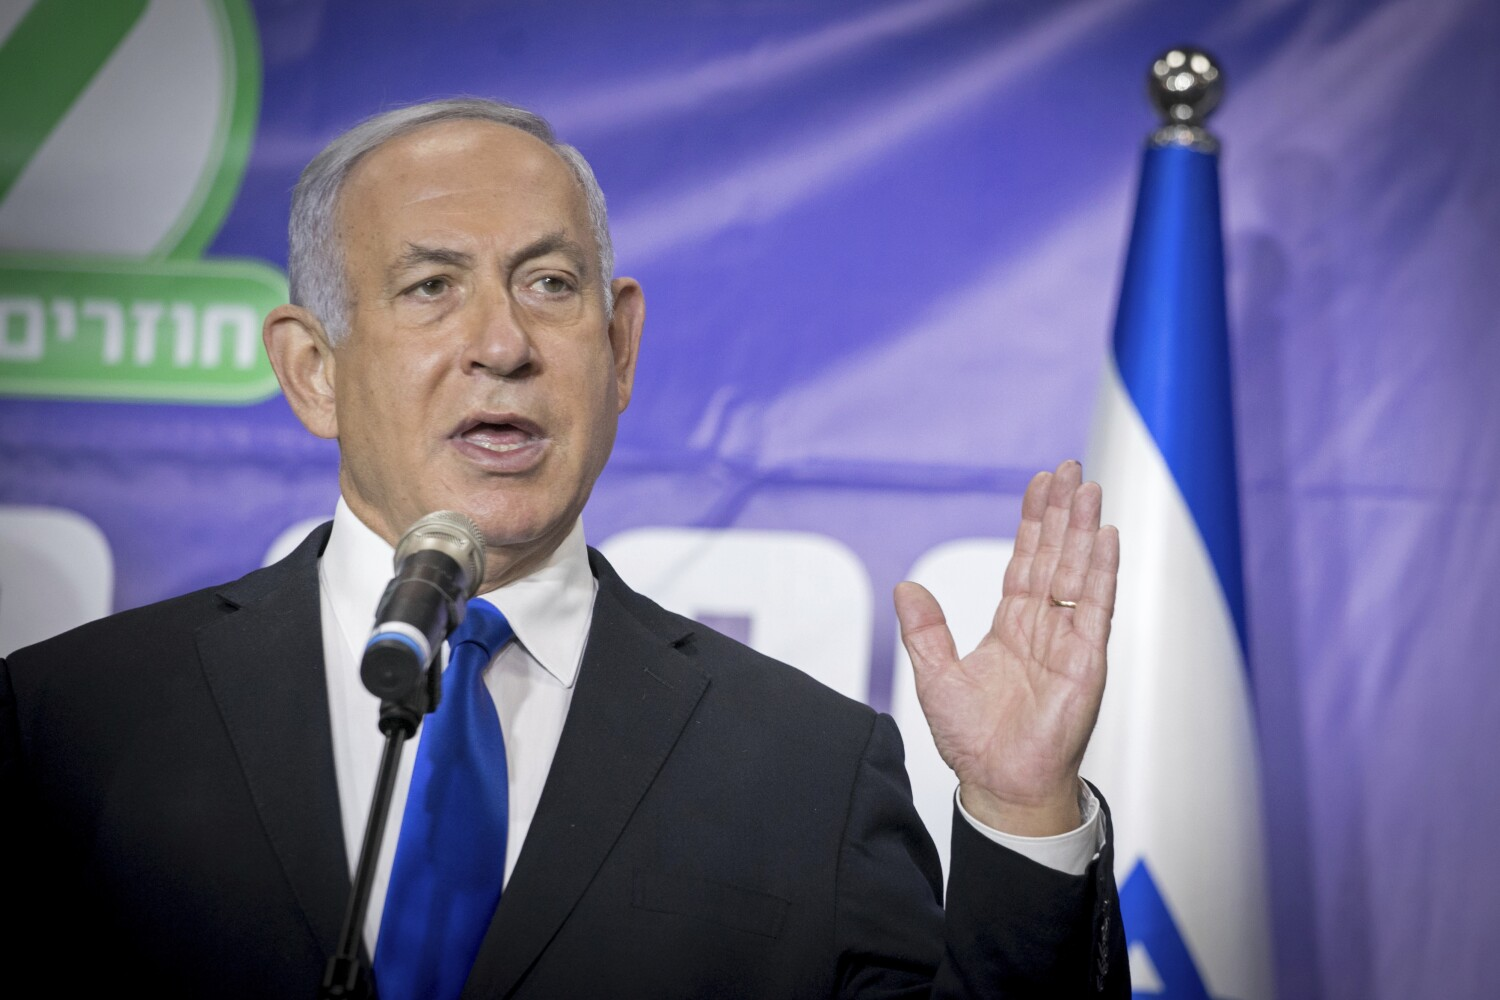 News Analysis: Drama over Netanyahu's possible ouster could complicate U.S.-Israel ties